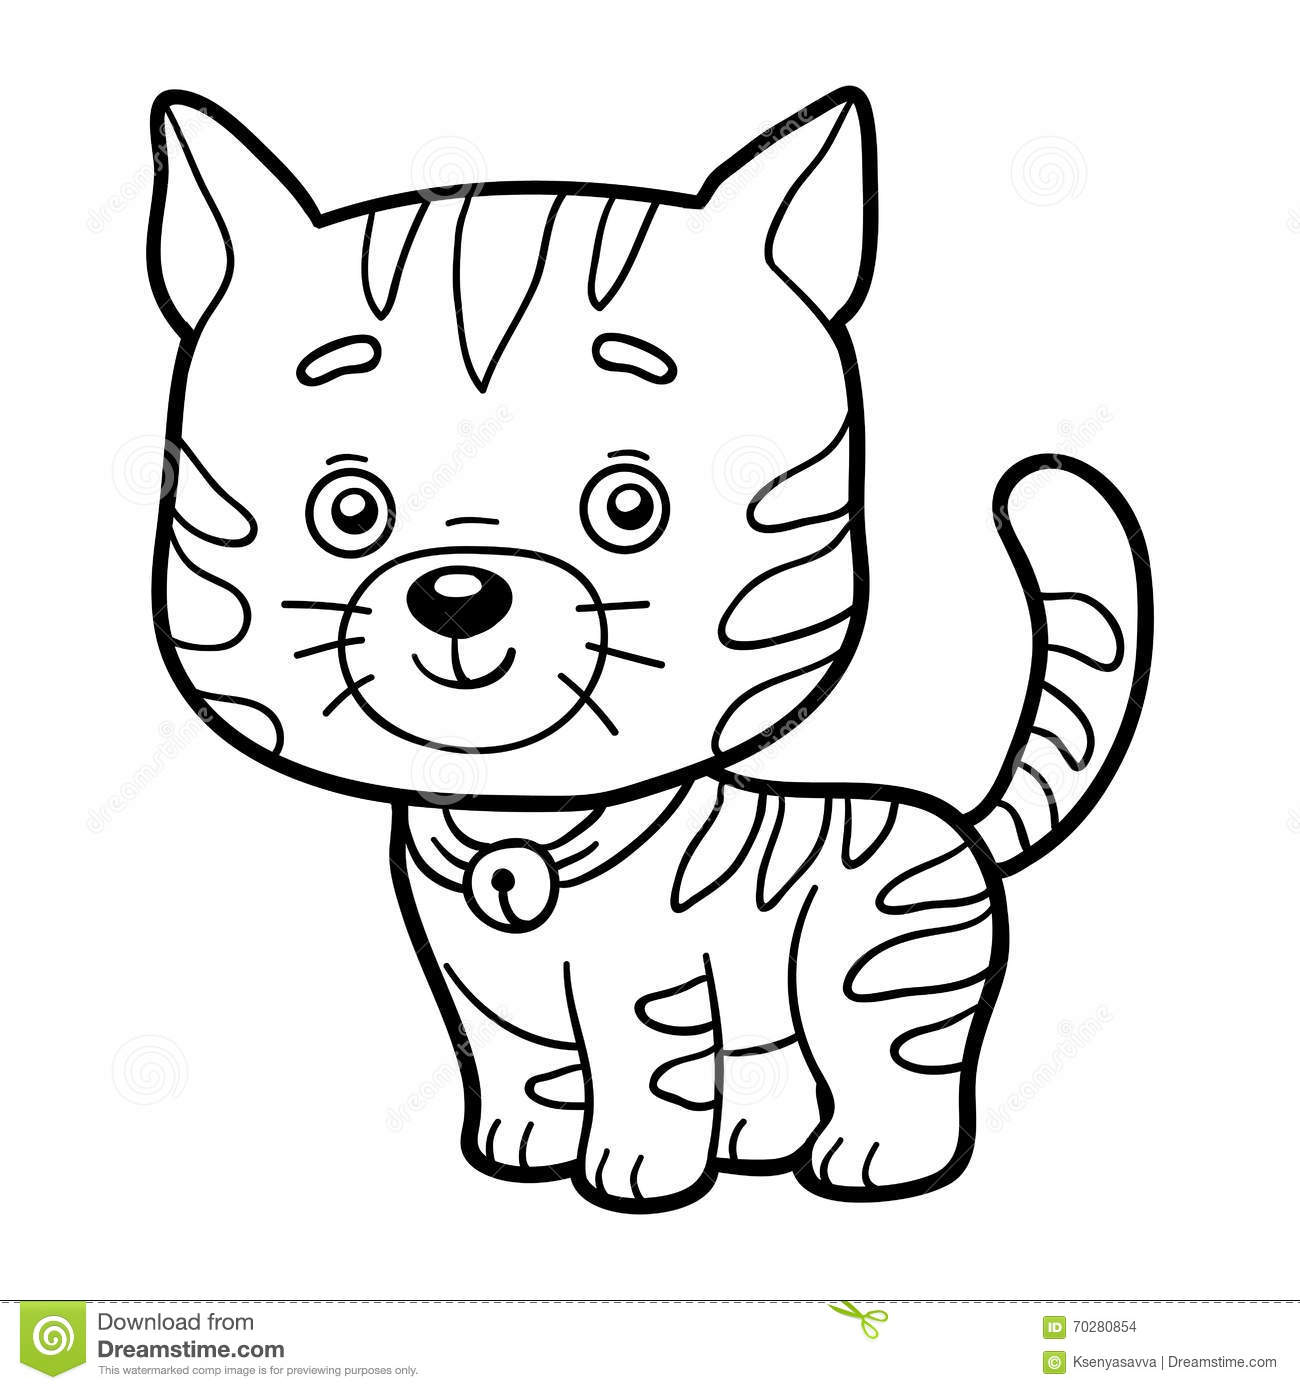 Coloring Book, Coloring Page (cat) Stock Vector - Illustration of ...